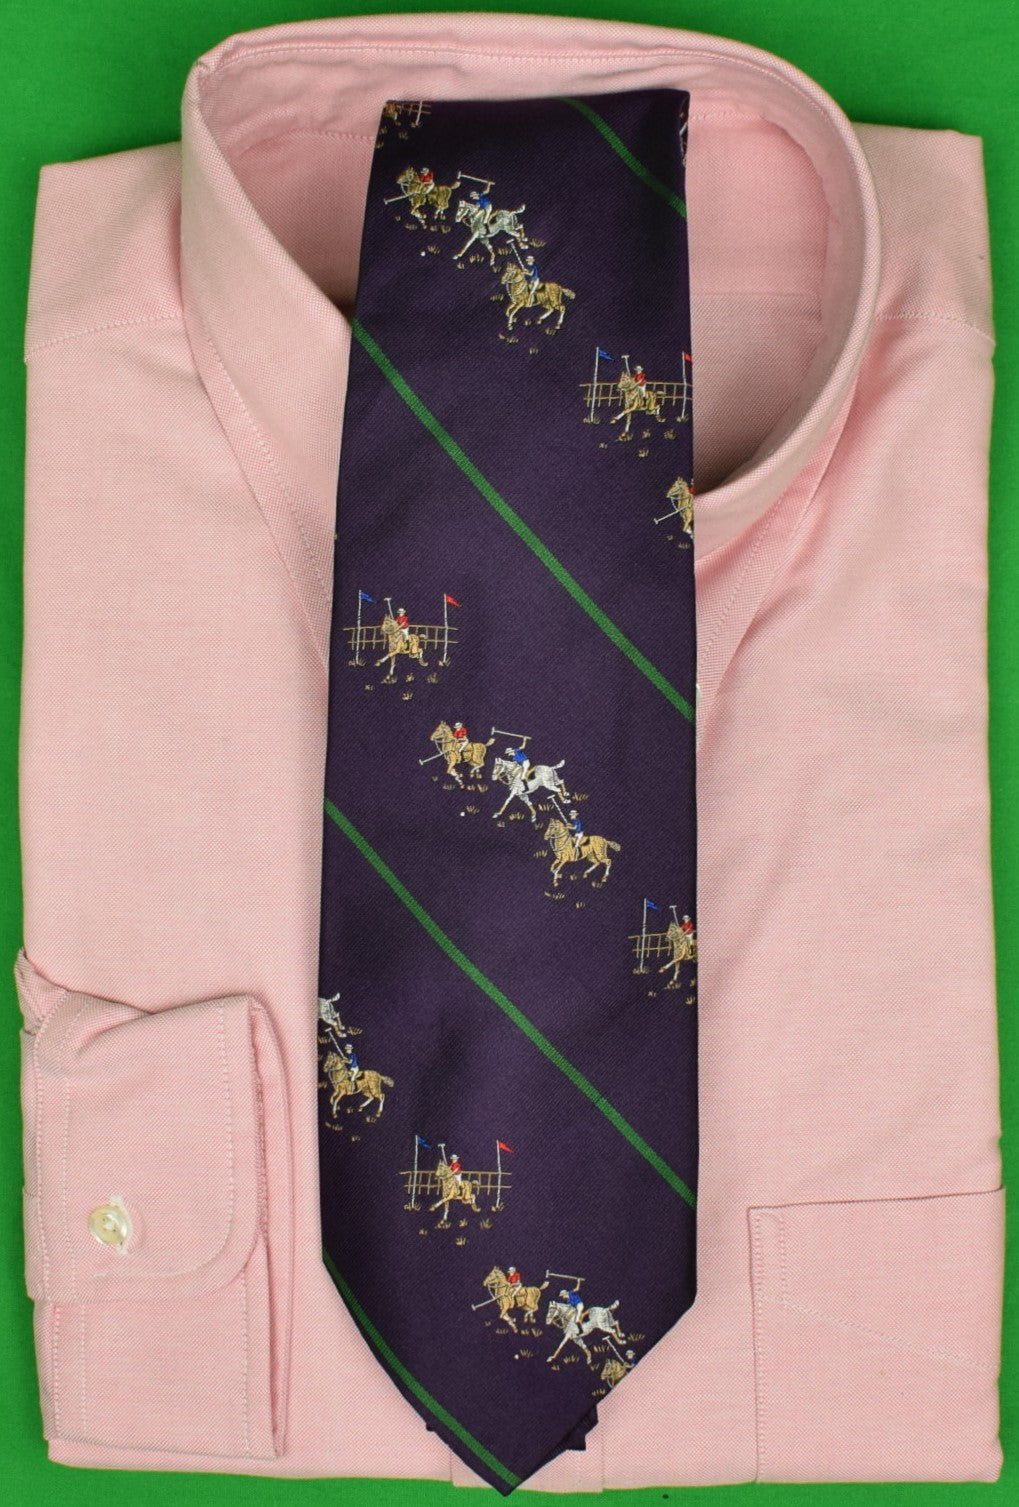 Polo by Ralph Lauren Purple w/ Green Stripe Polo Match Motif Jacquard Silk Tie